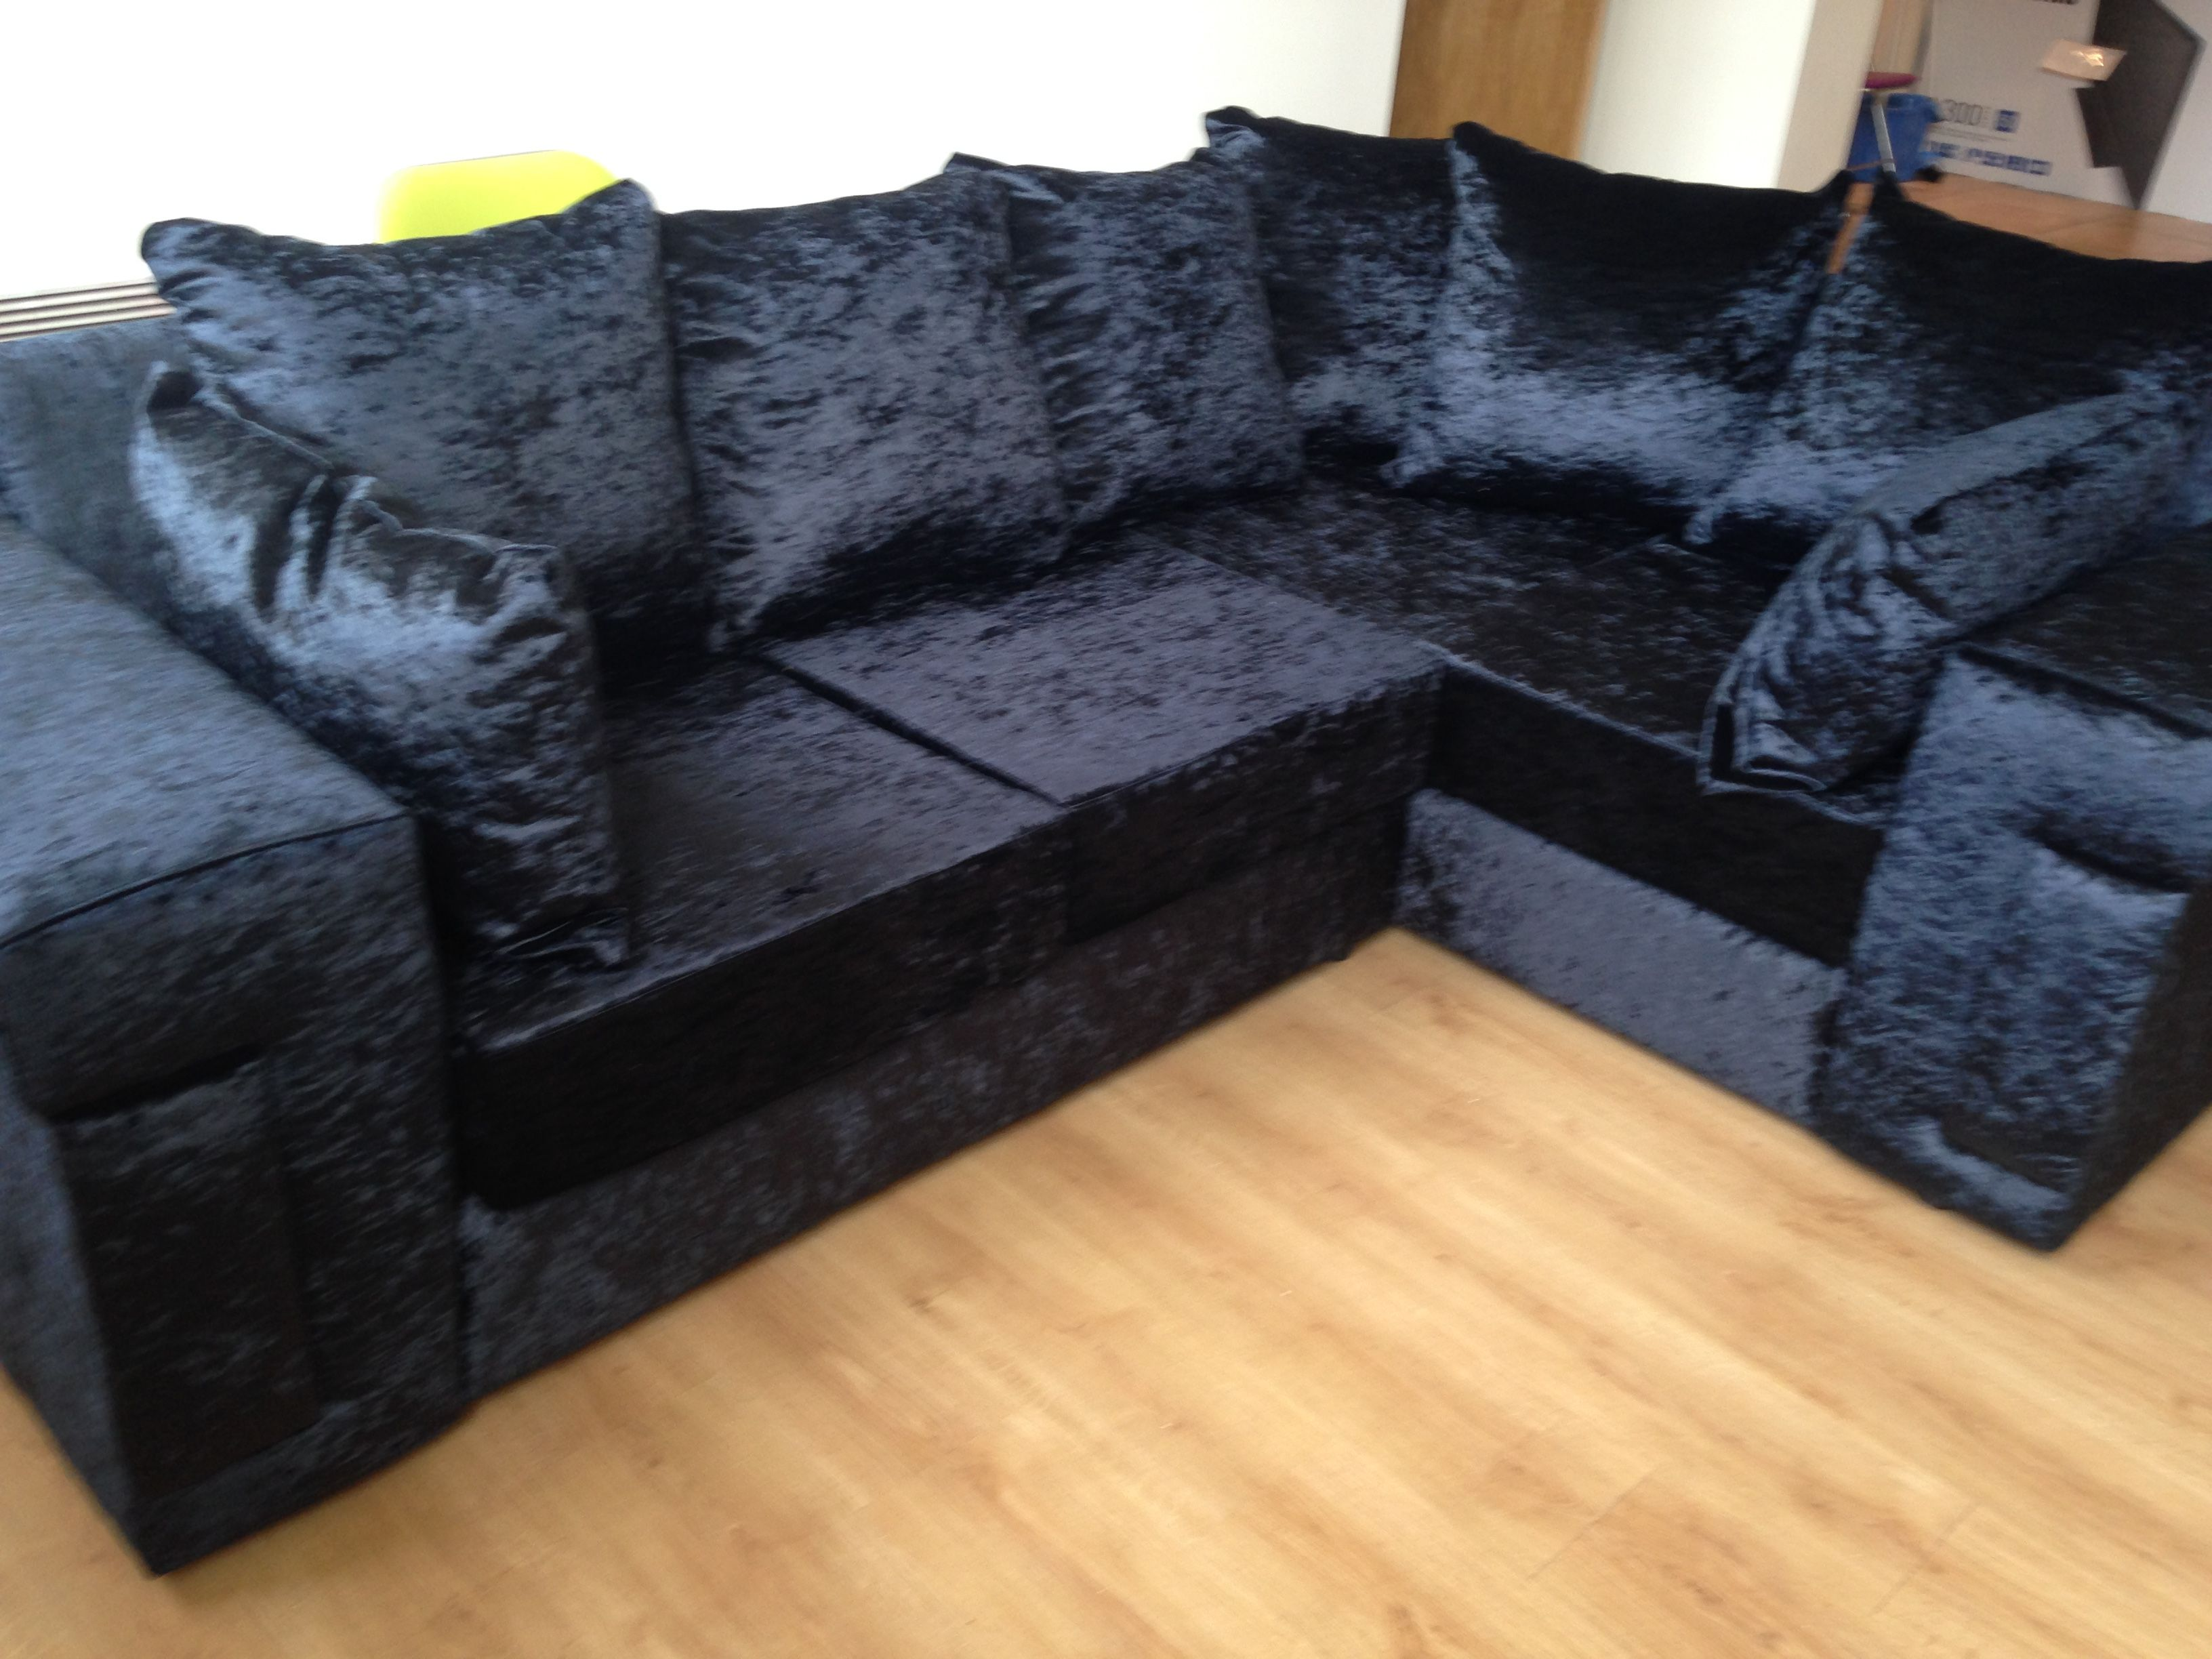 Desire all black crushed velvet corner sofa in lefthand square